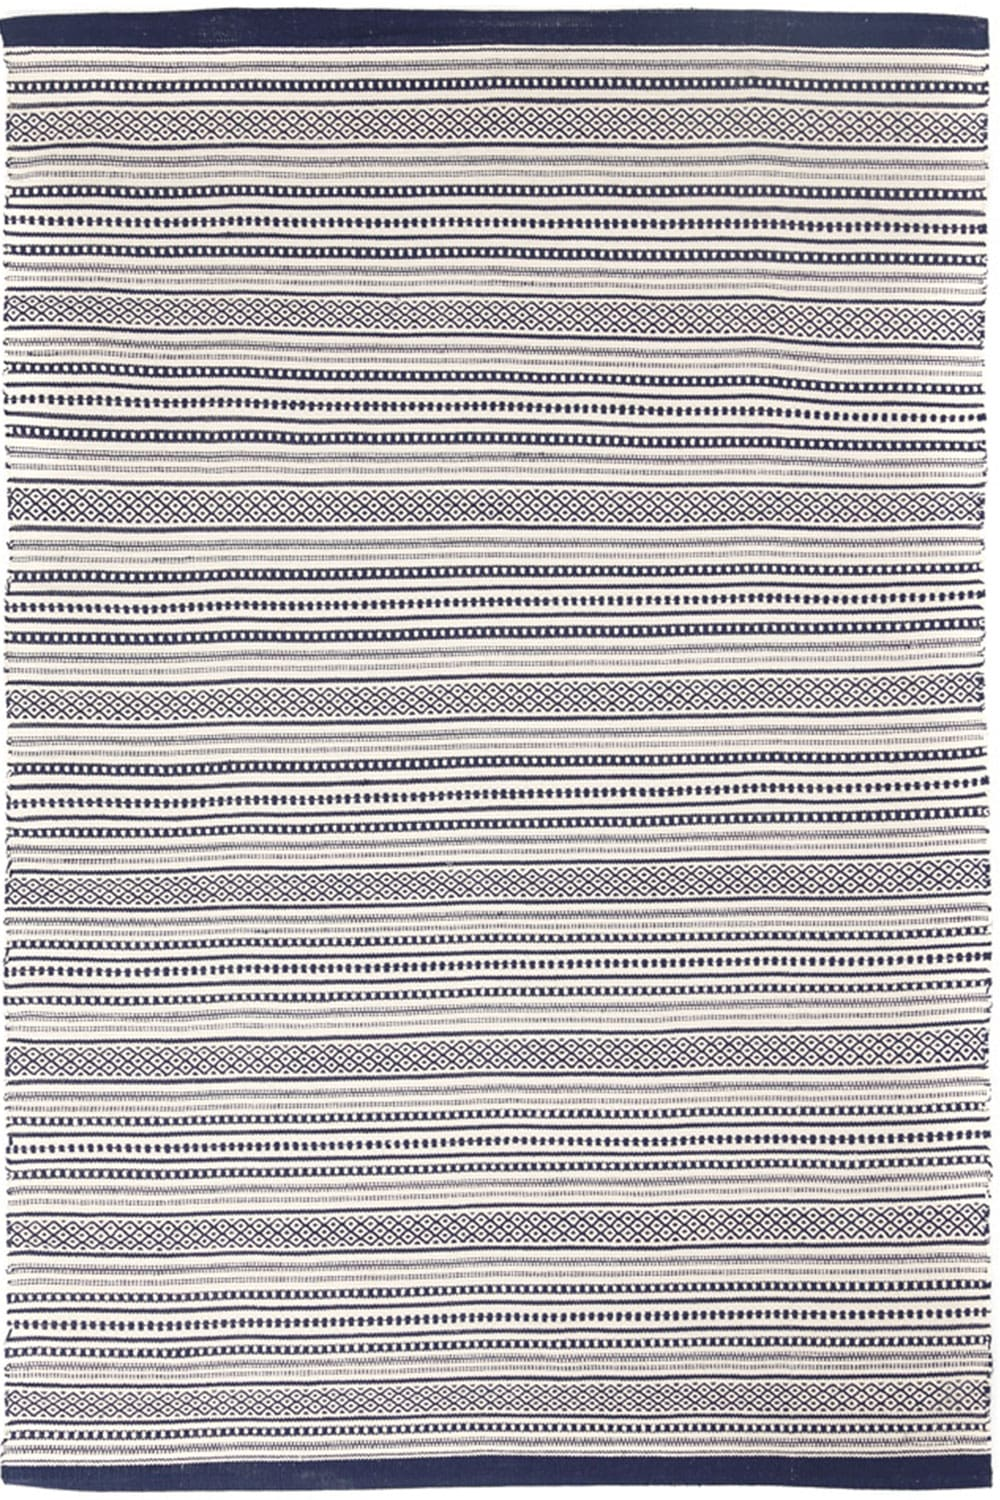 Χαλί Urban Cotton Kilim Titan Iris White-Blue Royal Carpet 160X230